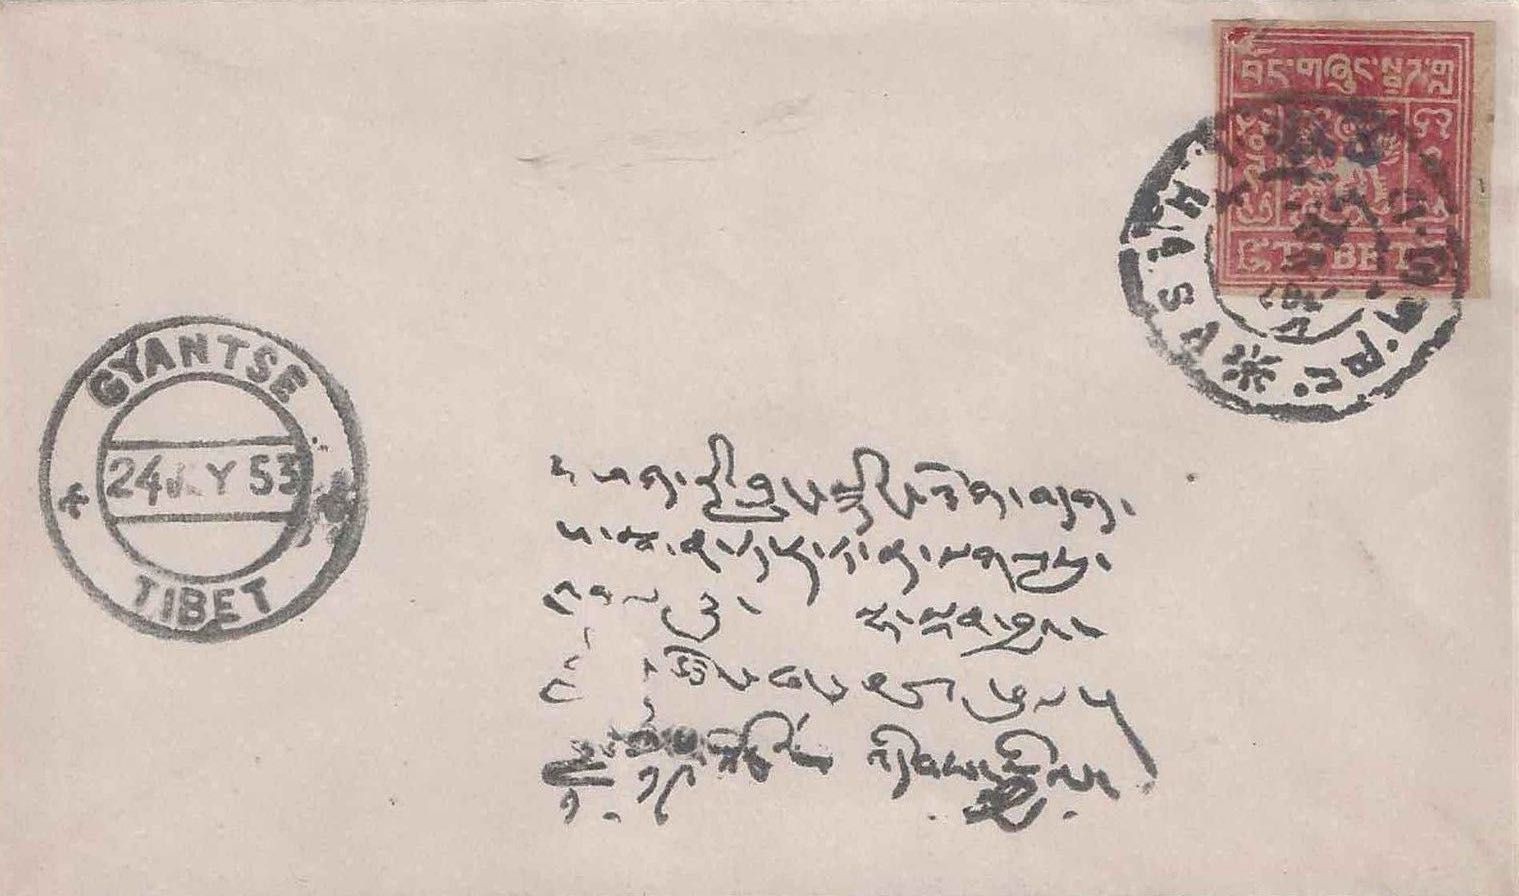 tibet_cover_forgery3